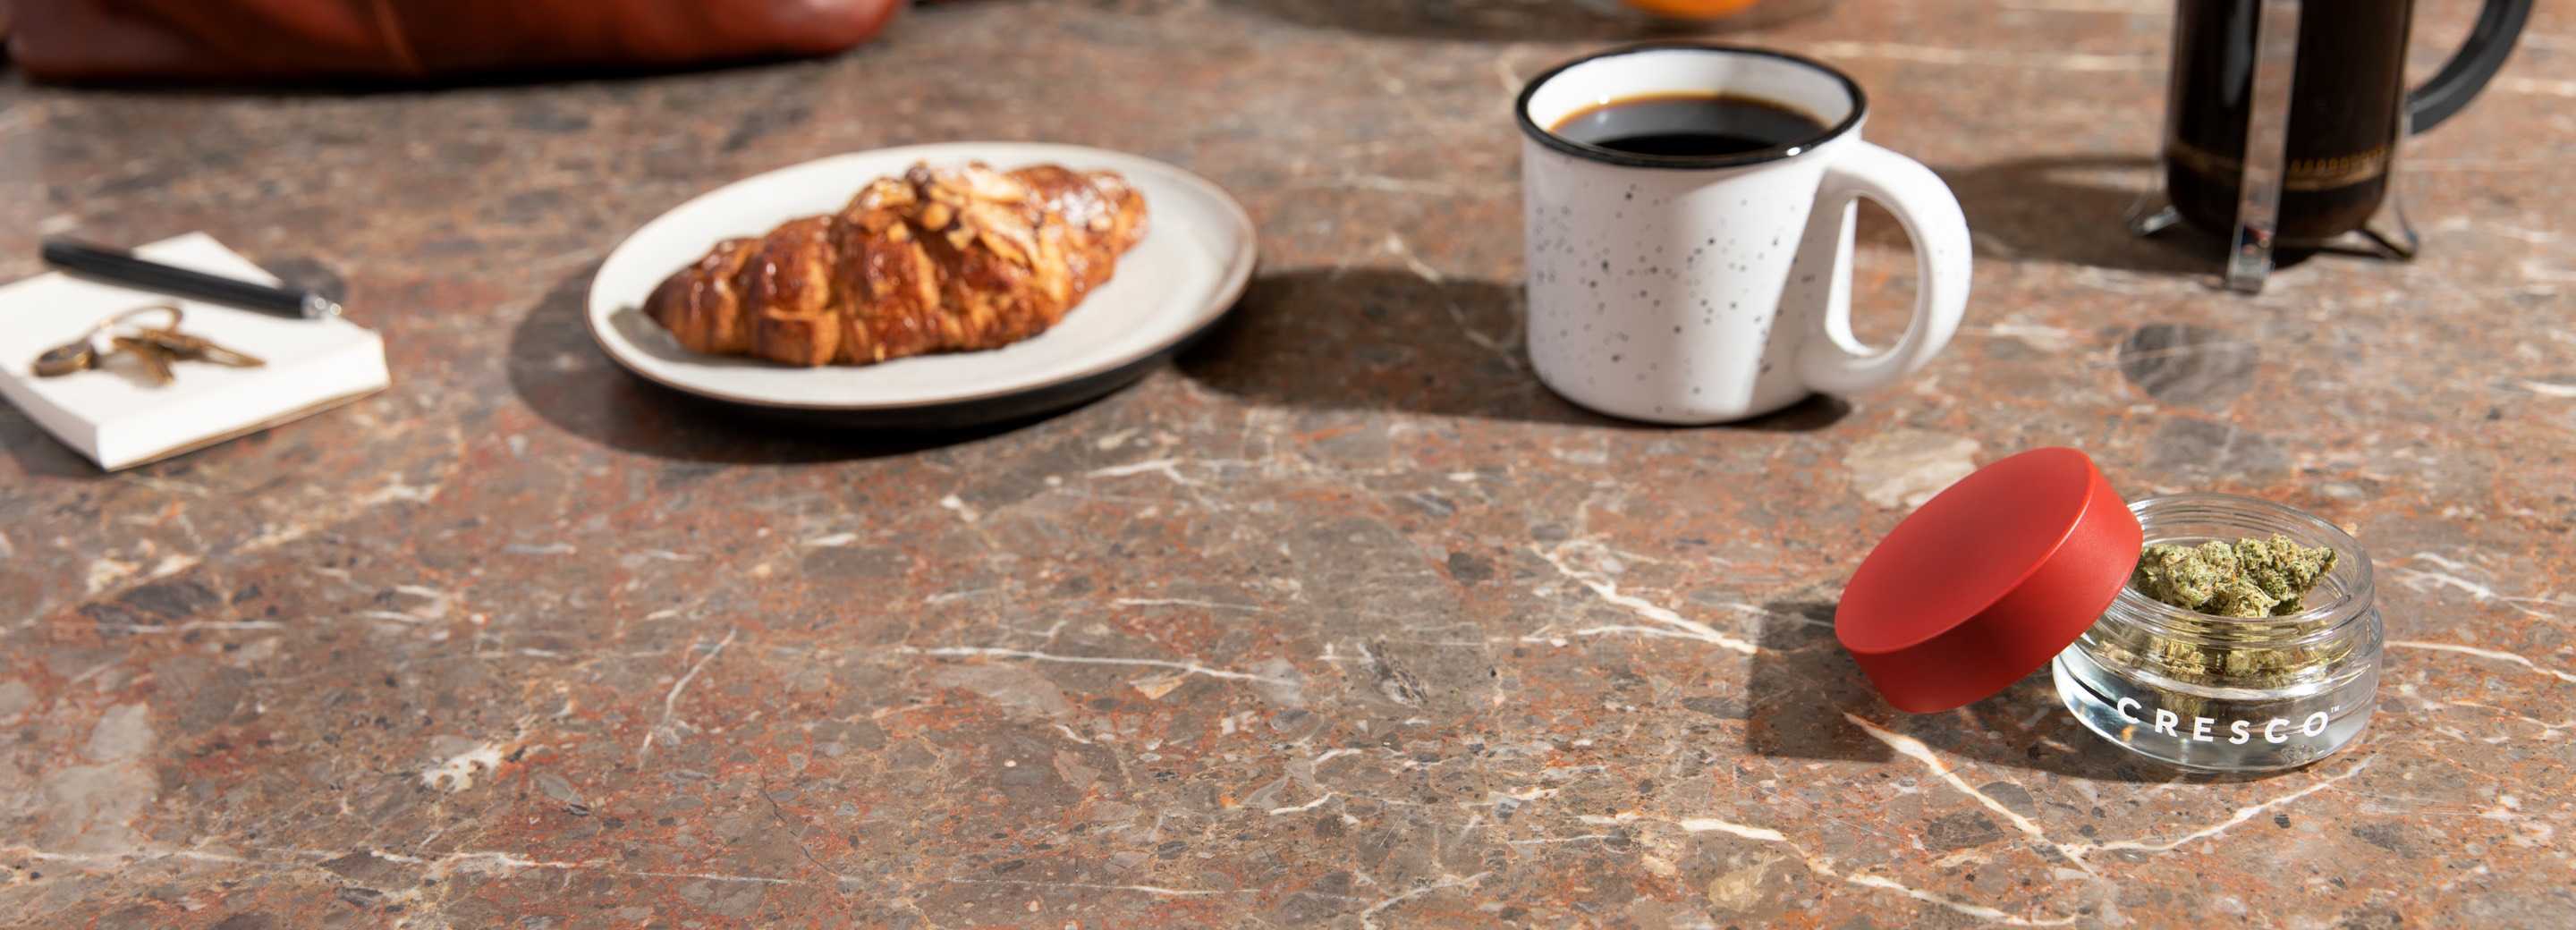 Cresco™ jar on counter with coffee and croissant